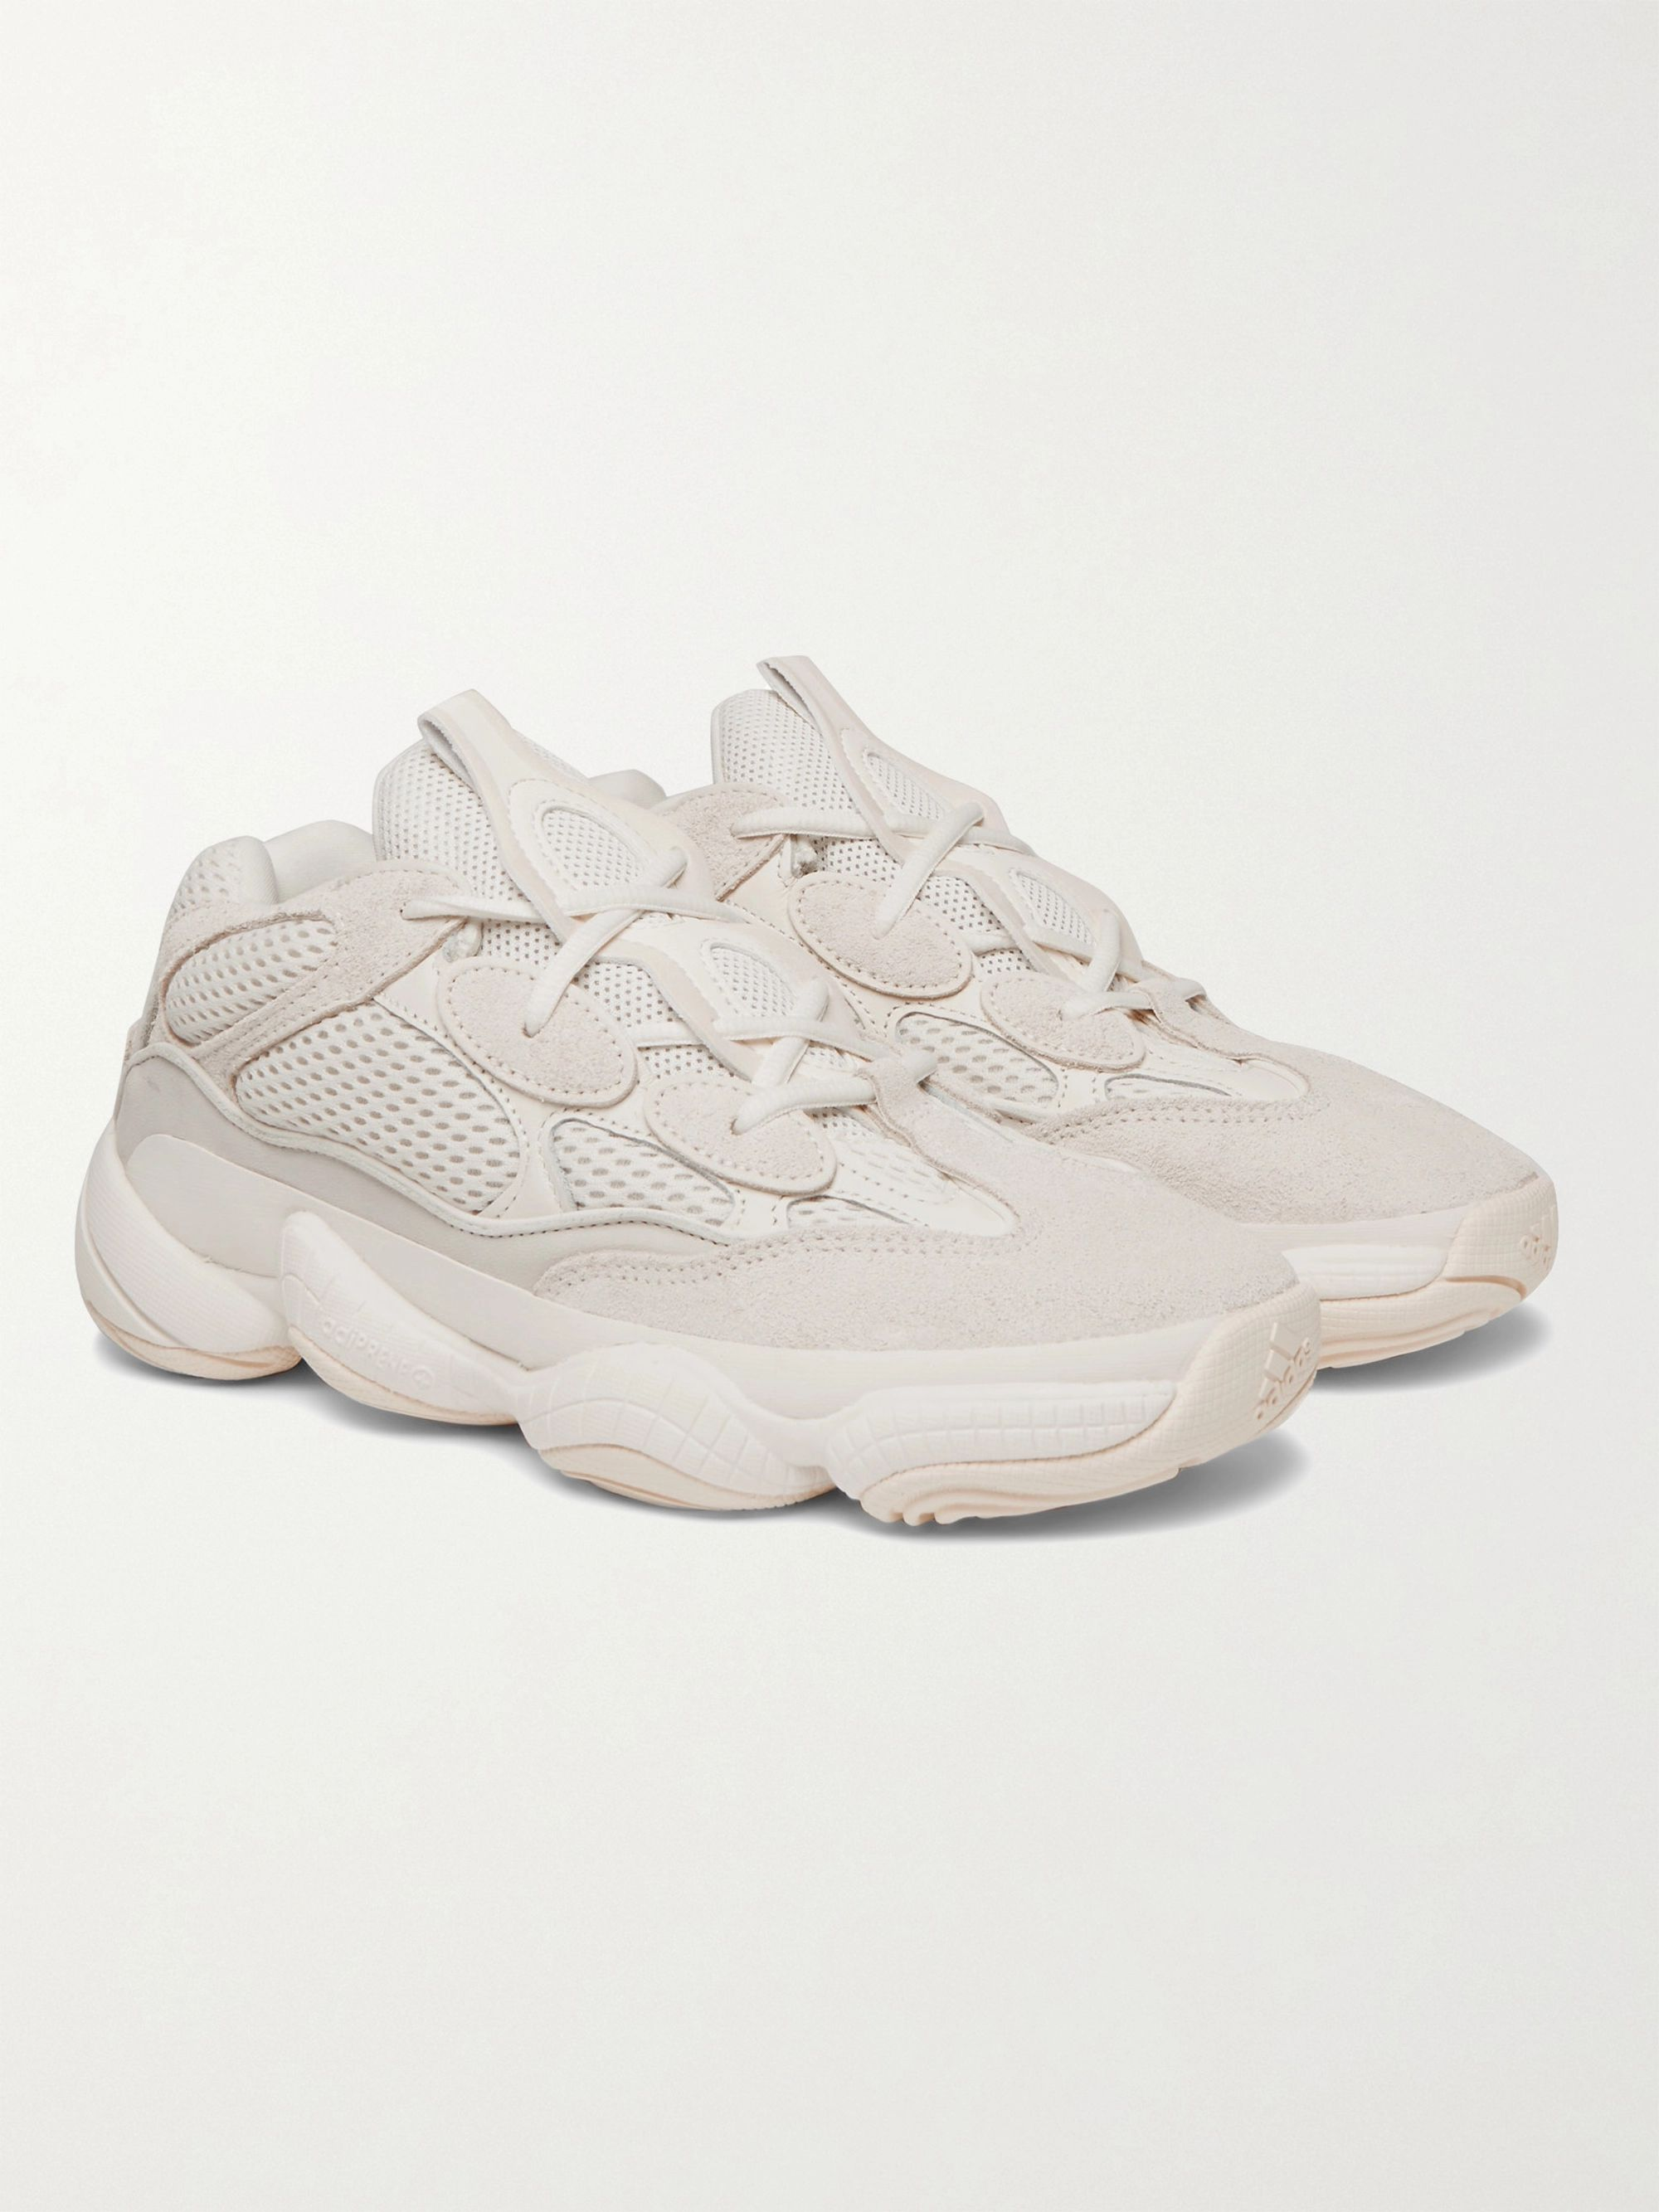 Yeezy 500 Suede, Leather and Mesh Sneakers